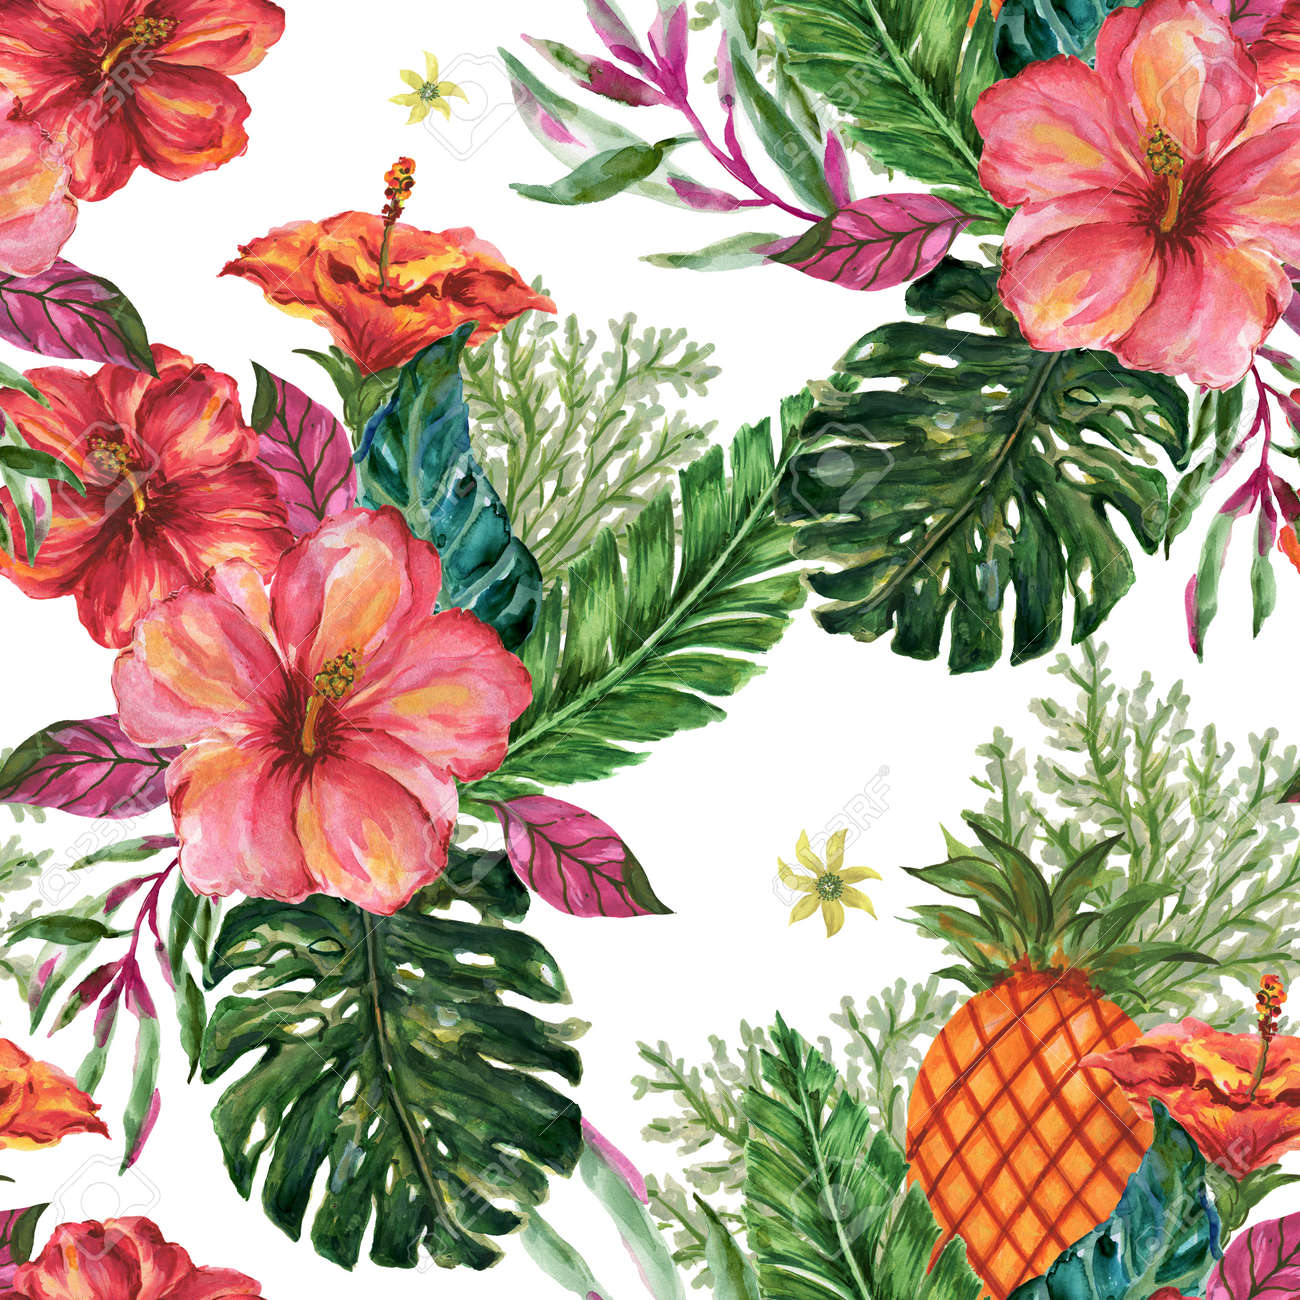 Watercolor gouache summer beach jungle seamless pattern tree, leaf, fruit, food, botanice, doodle background Hand painted tropical illustration - 141640784